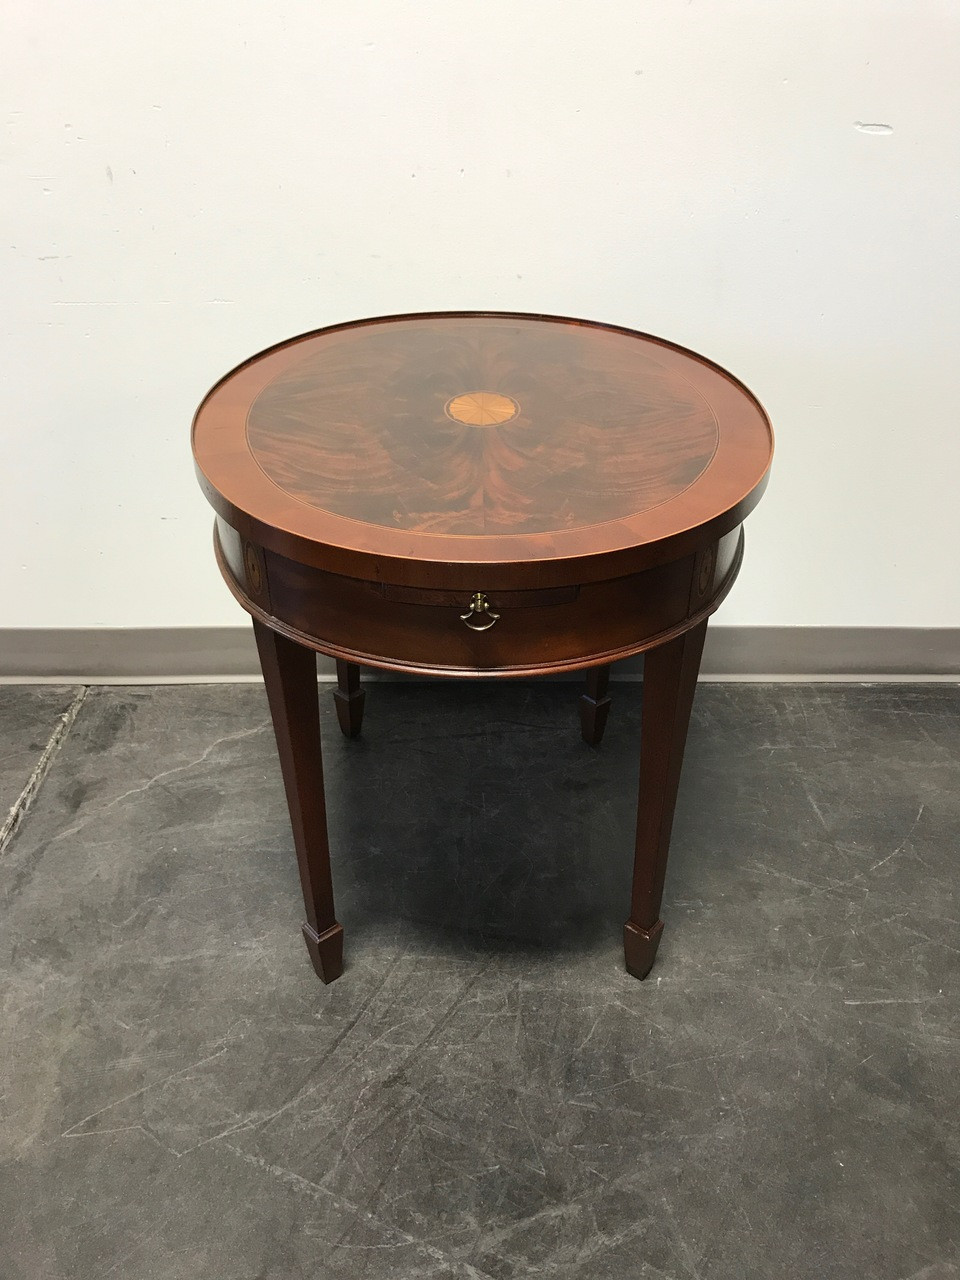 Charmant SOLD OUT   HEKMAN Copley Place Flame Mahogany Inlaid Banded Side End Table